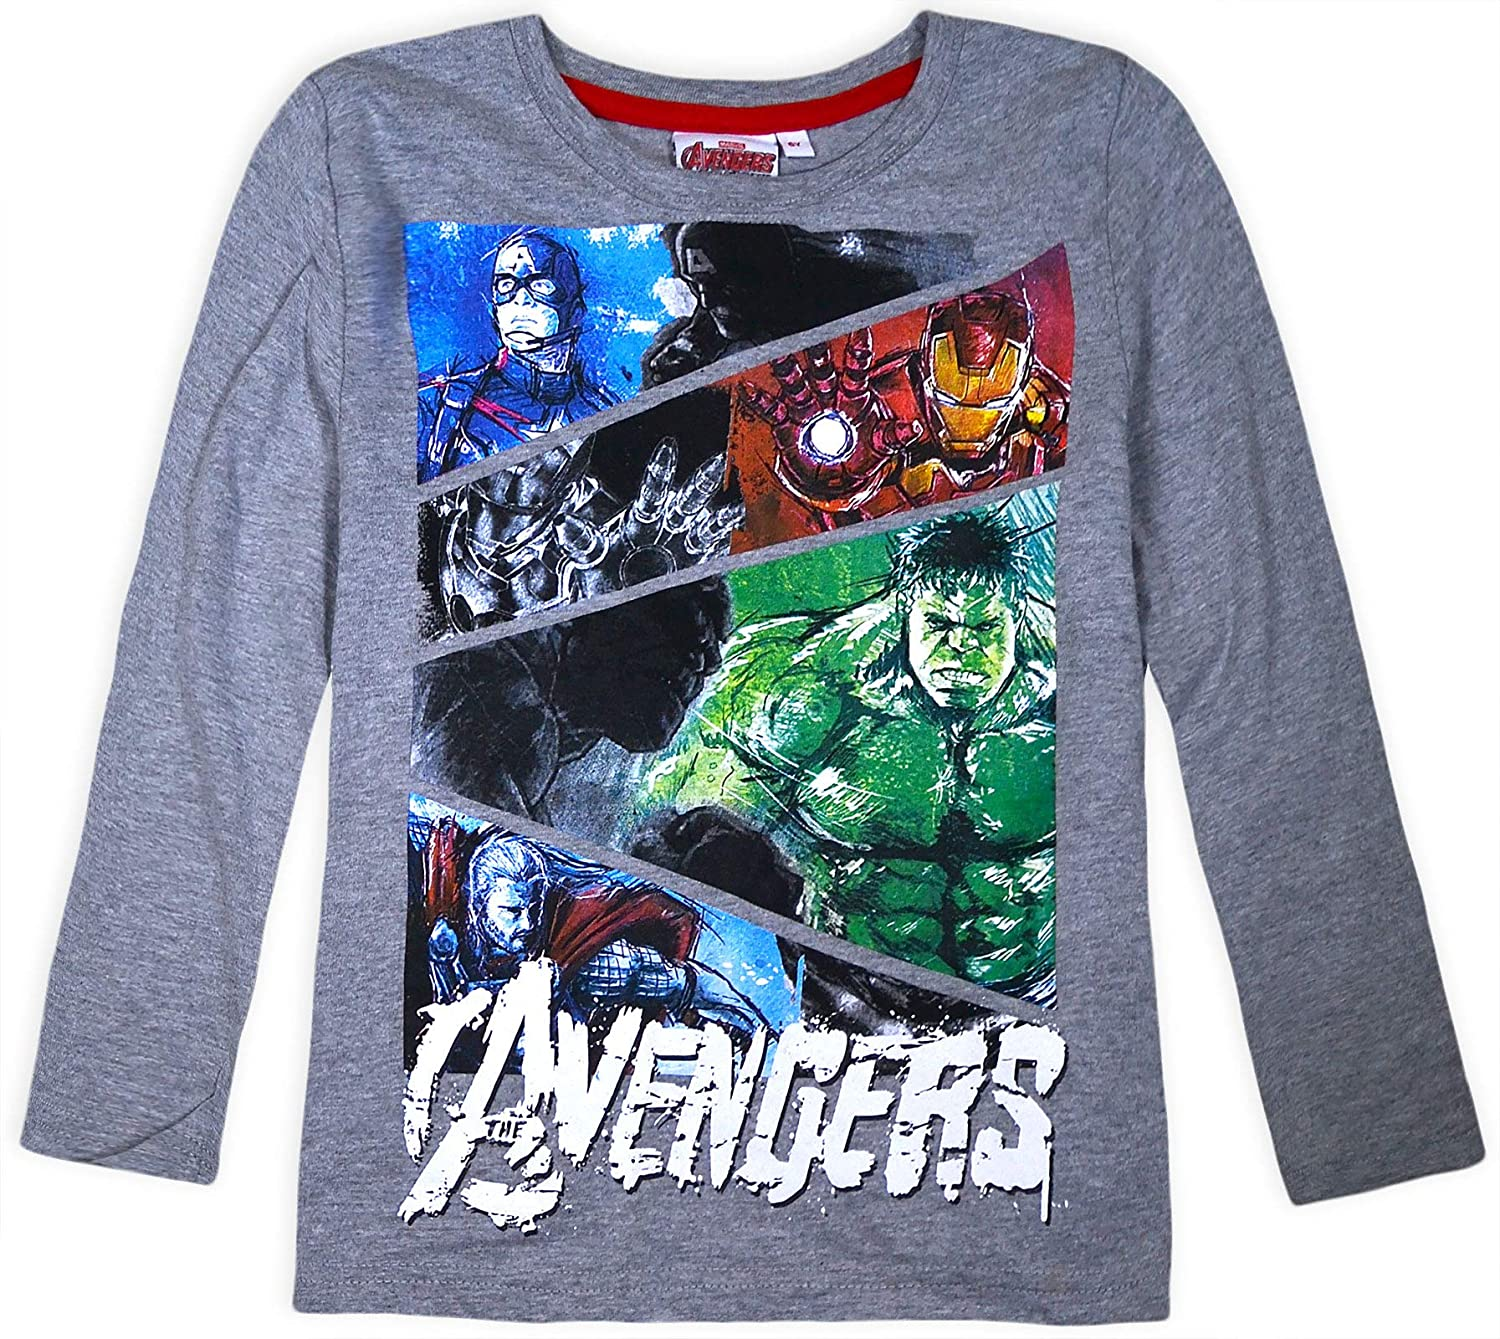 JollyRascals Boys Avengers Top Long Sleeve Marvel Jumper Kids New Cotton T-Shirt Characters Captain America Thor Hulk Iron Man Ages 6 8 10 12 Years